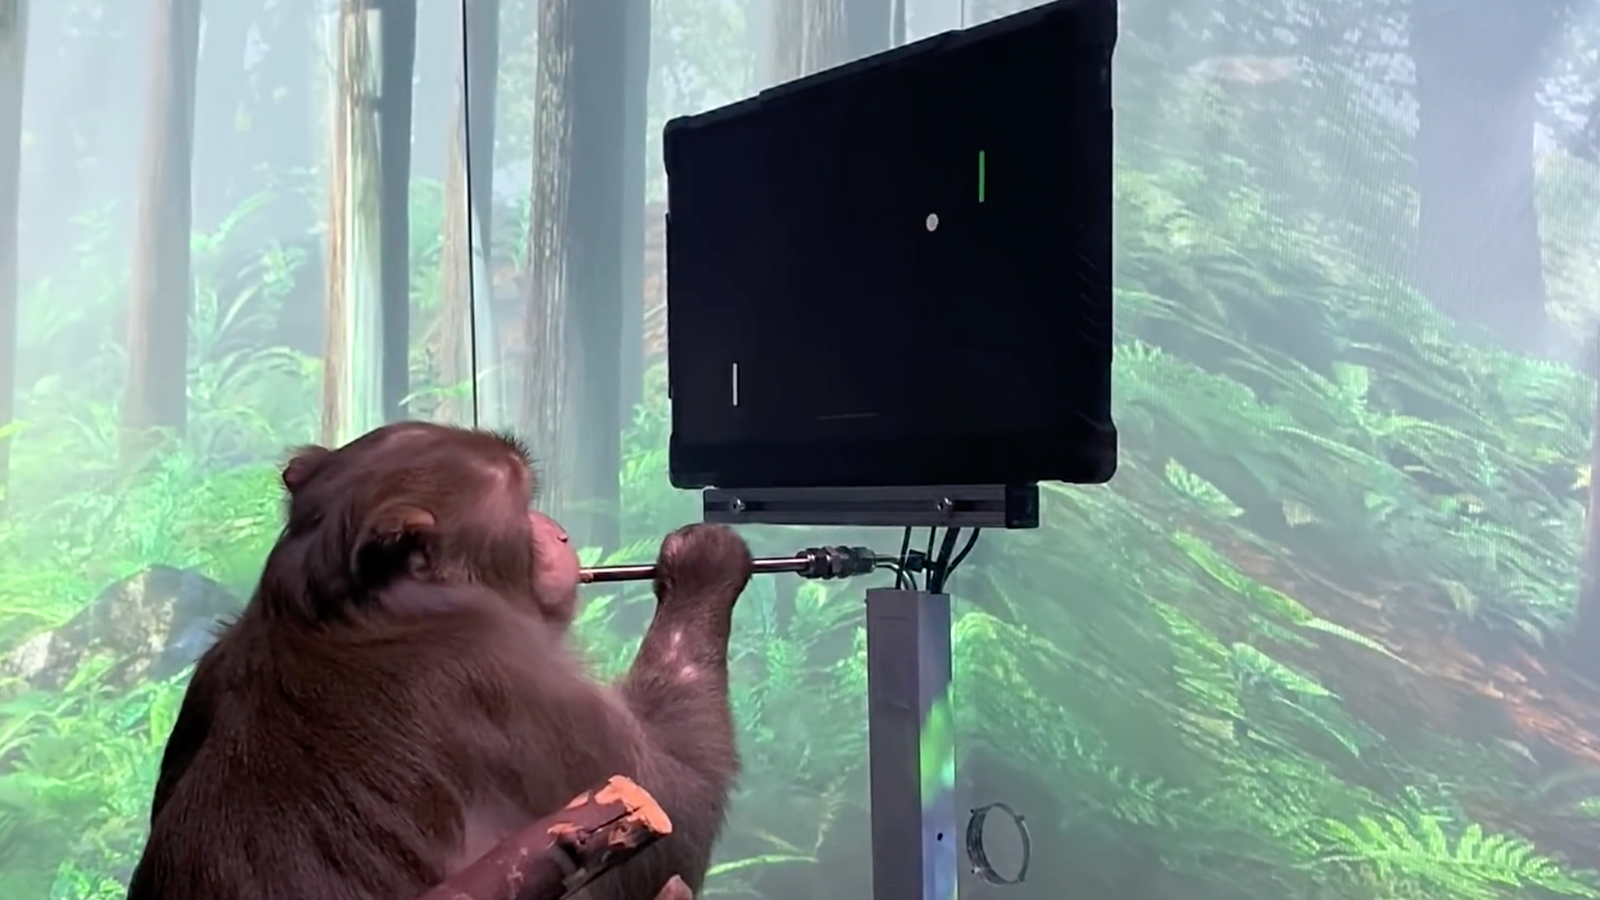 Elon Musk's brain implant firm teaches monkey to play Pong with its mind